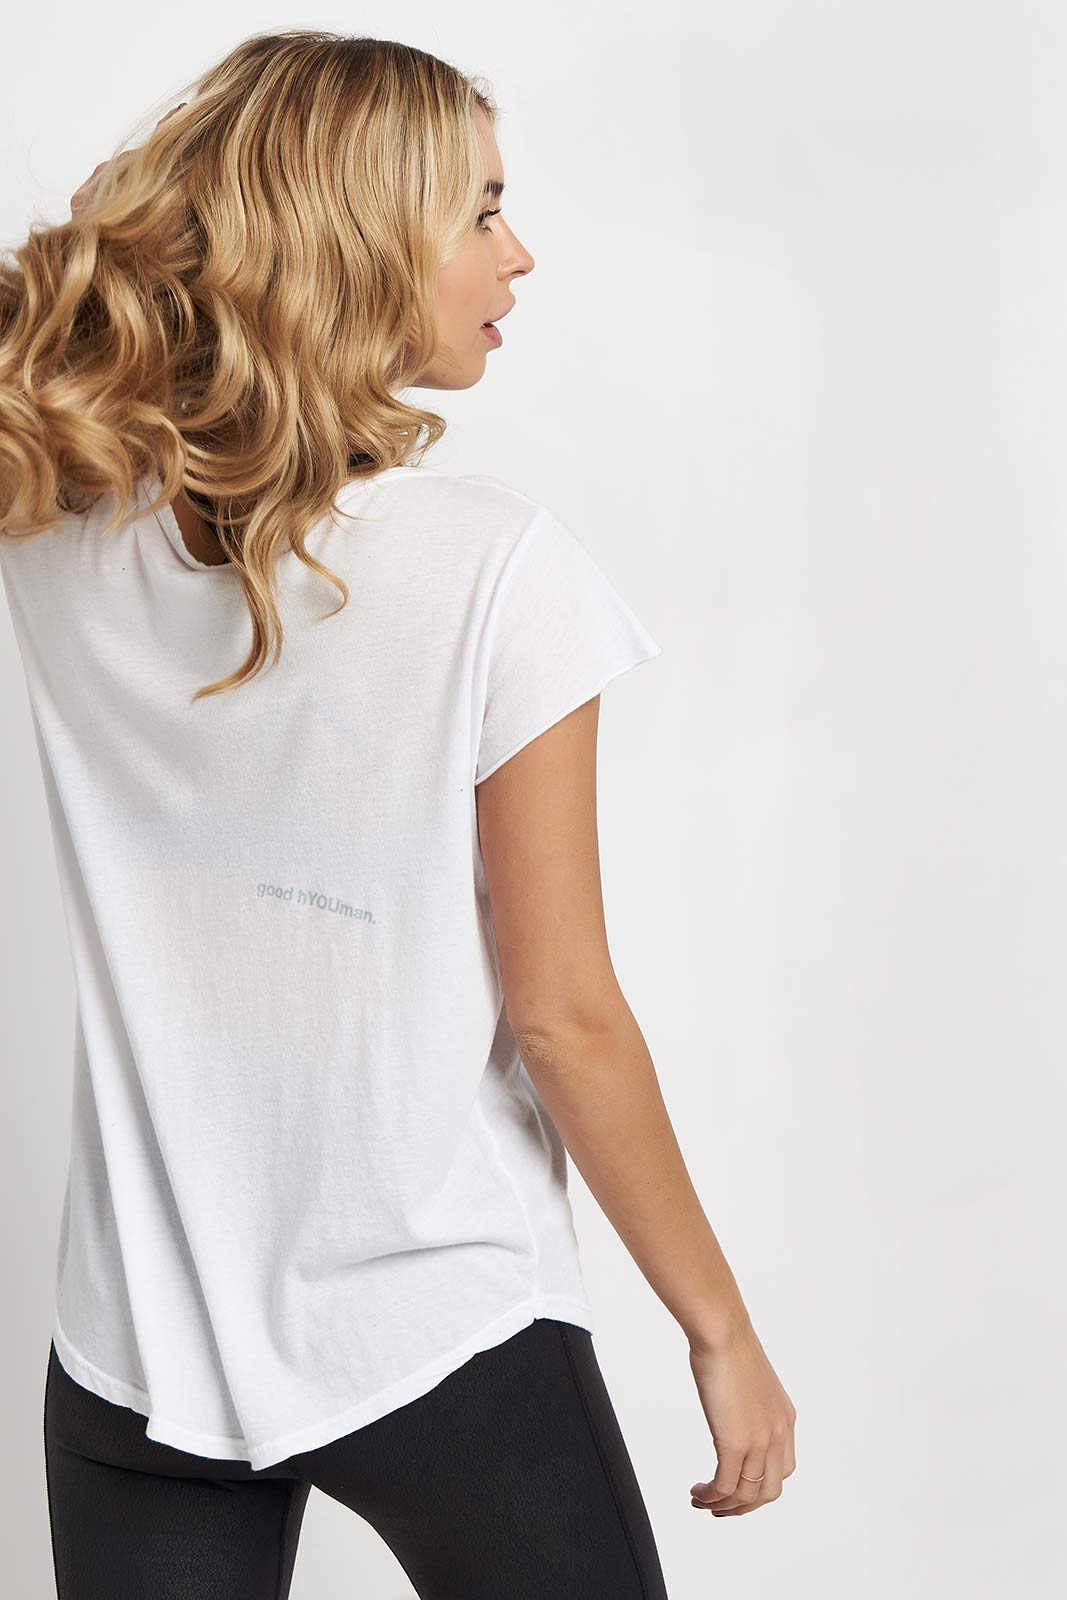 good hYOUman Rounded Relaxed Tee - The Helen image 2 - The Sports Edit